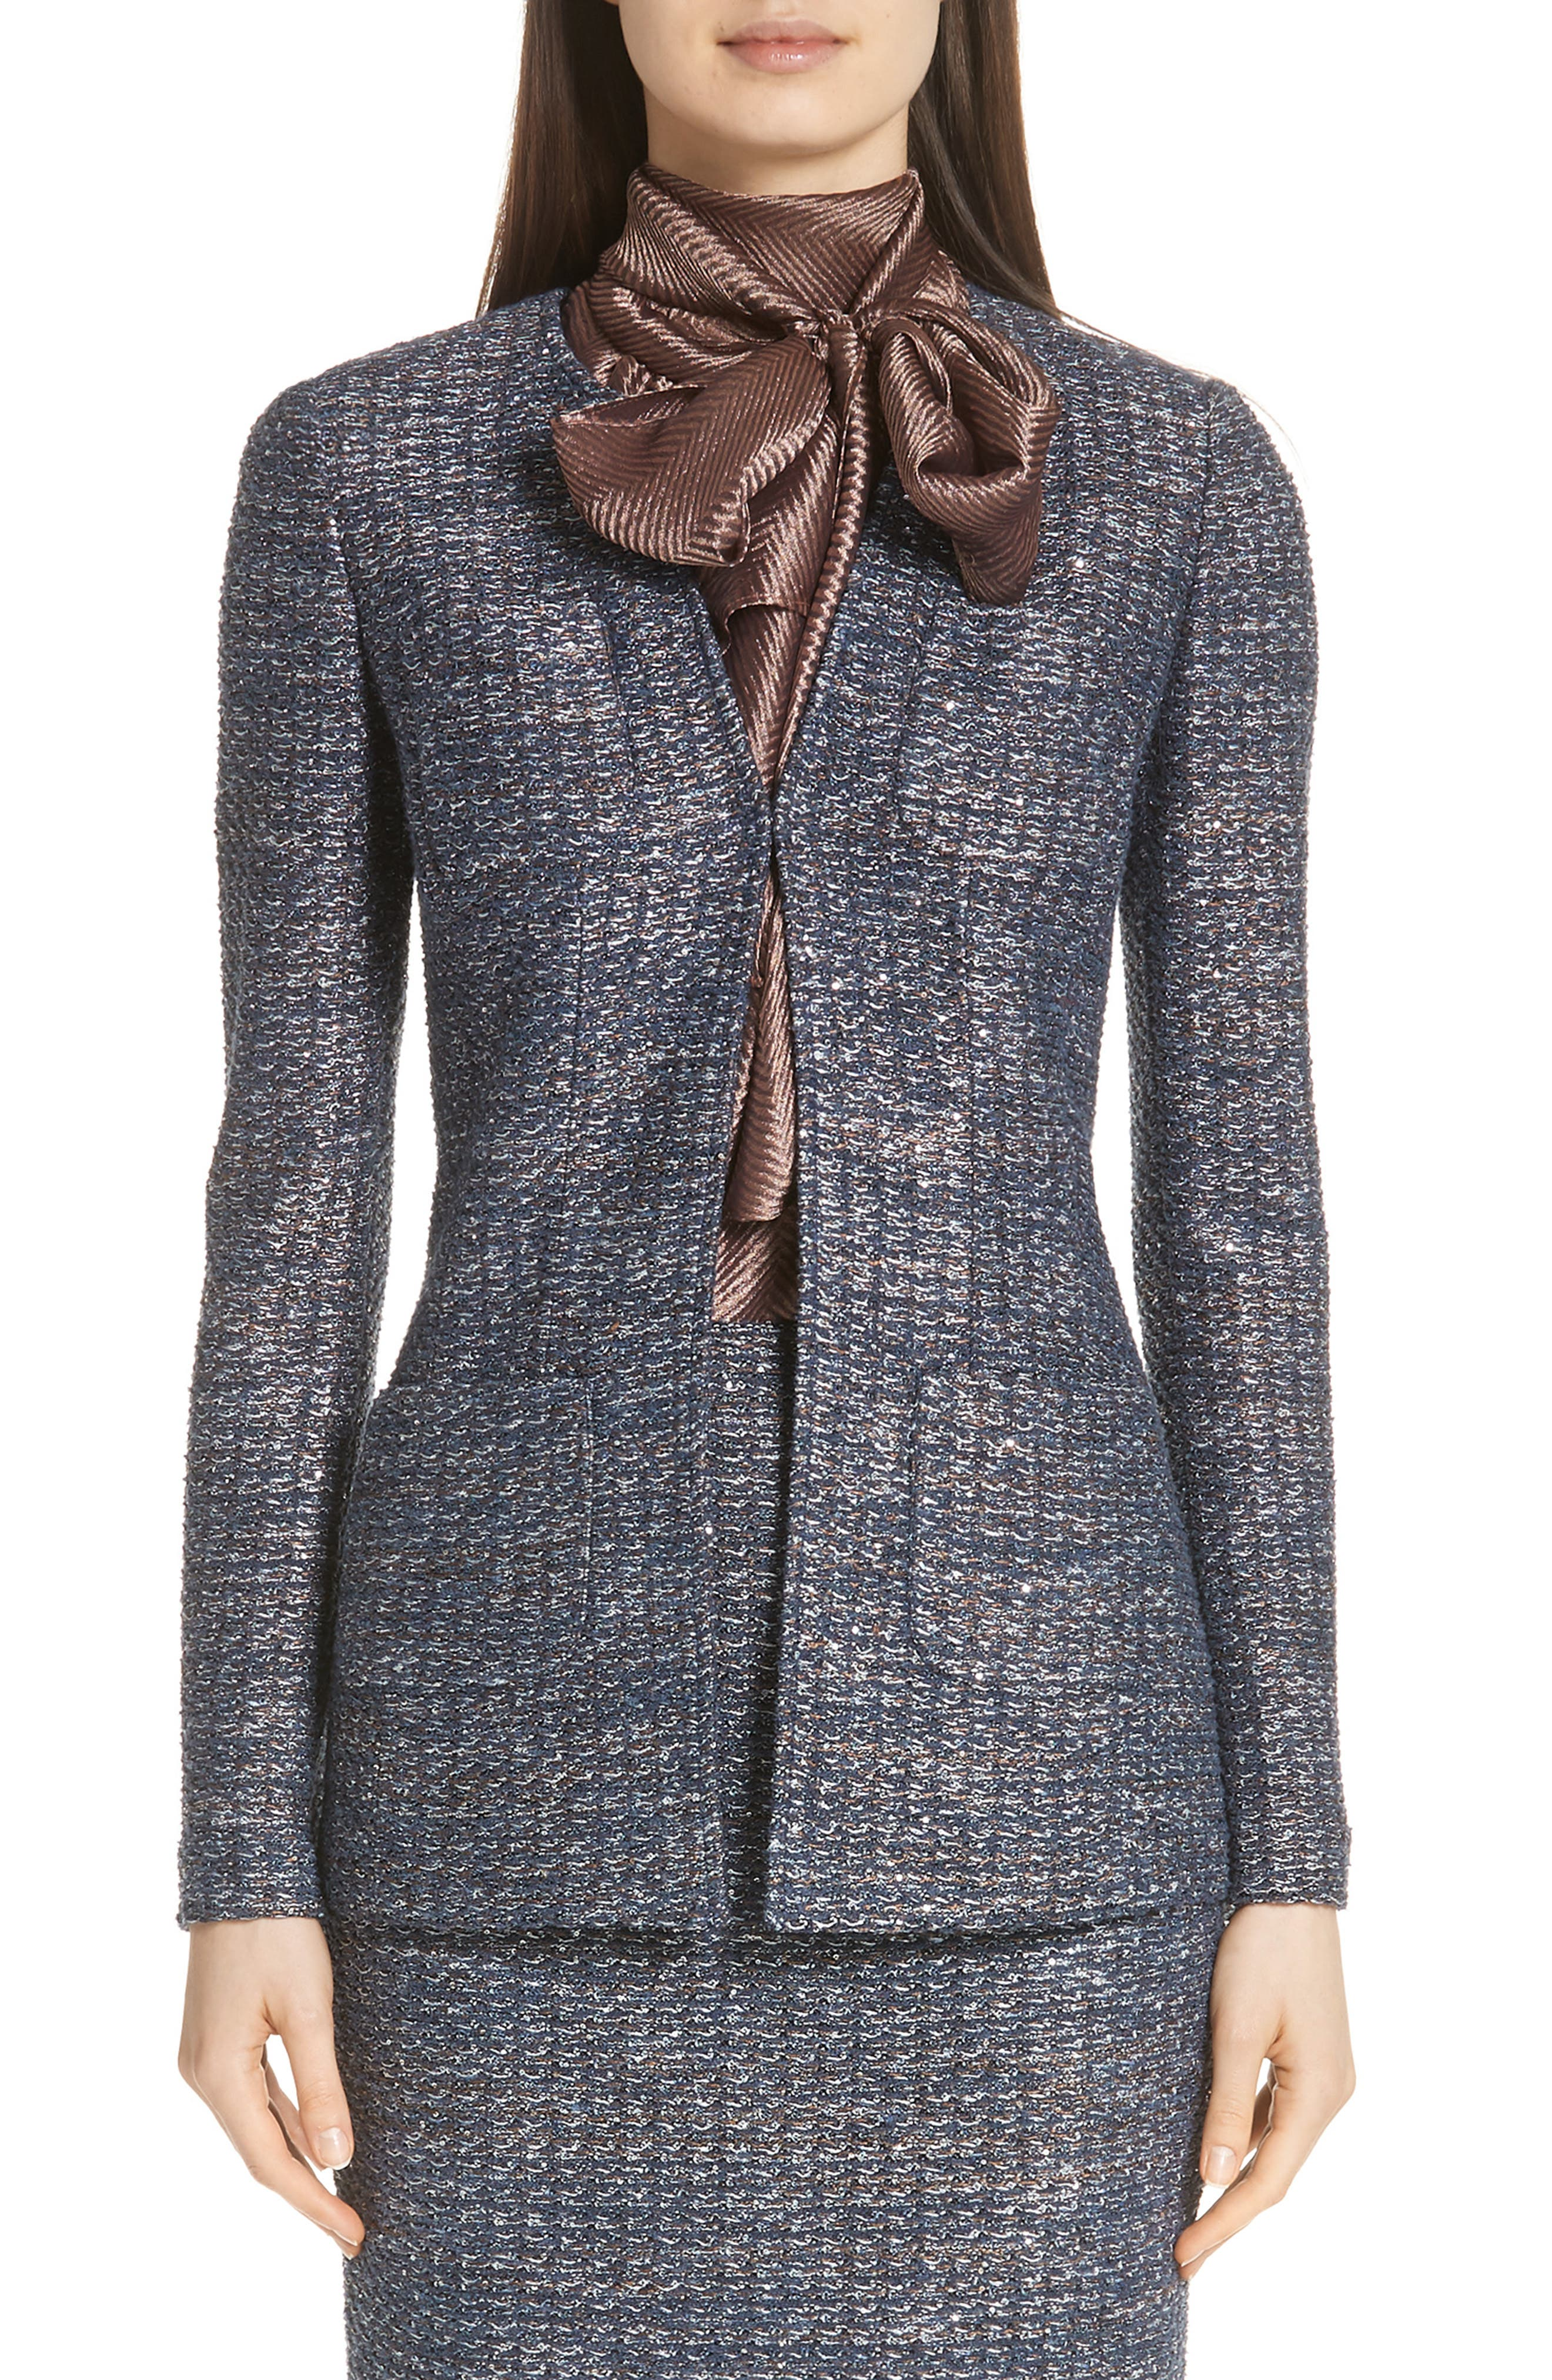 Copper Sequin Tweed Knit Jacket, Main, color, 410